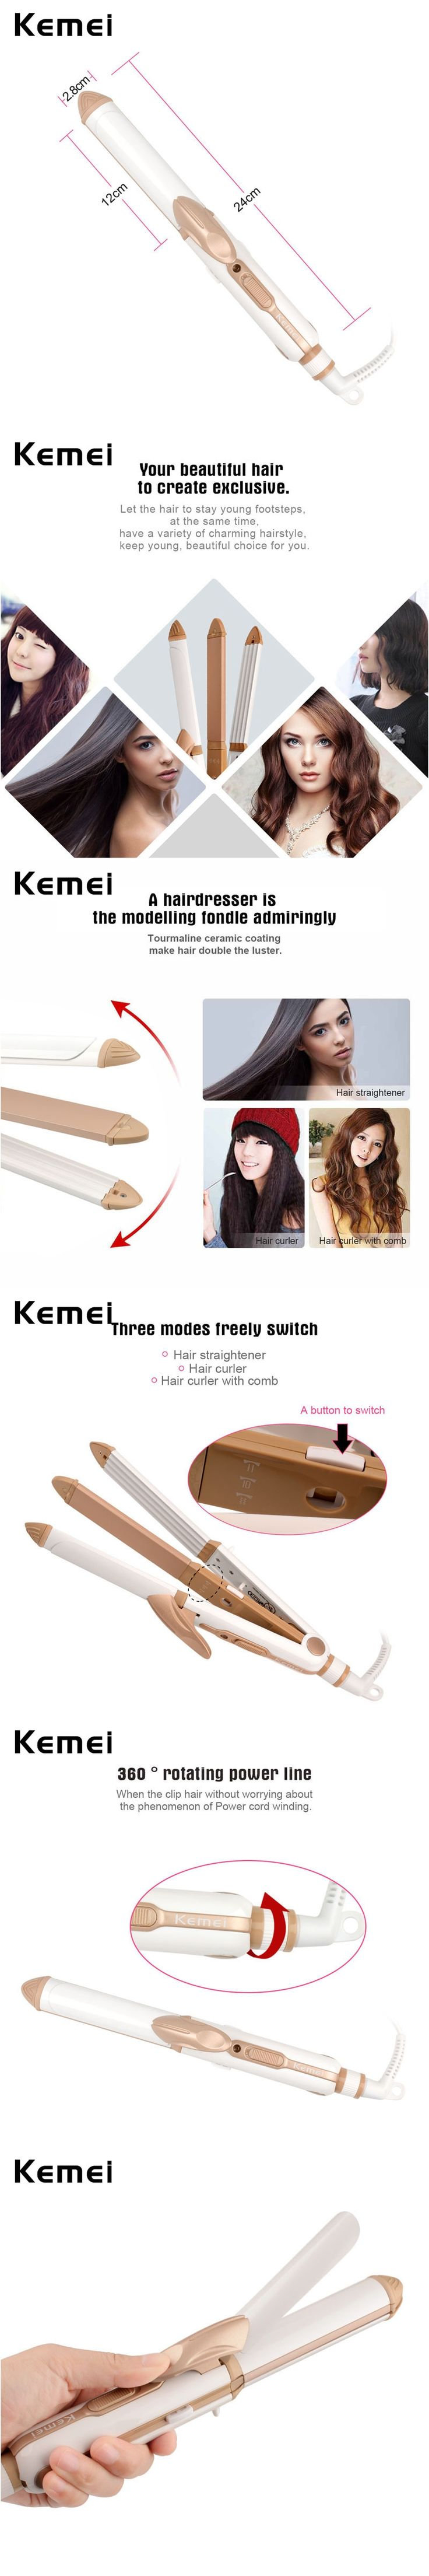 Kemei 3 in 1 Electric Fast Hair Straightener Curler Constant Temperature Corn Plate Flat Iron Clip Profesional brosse lissante